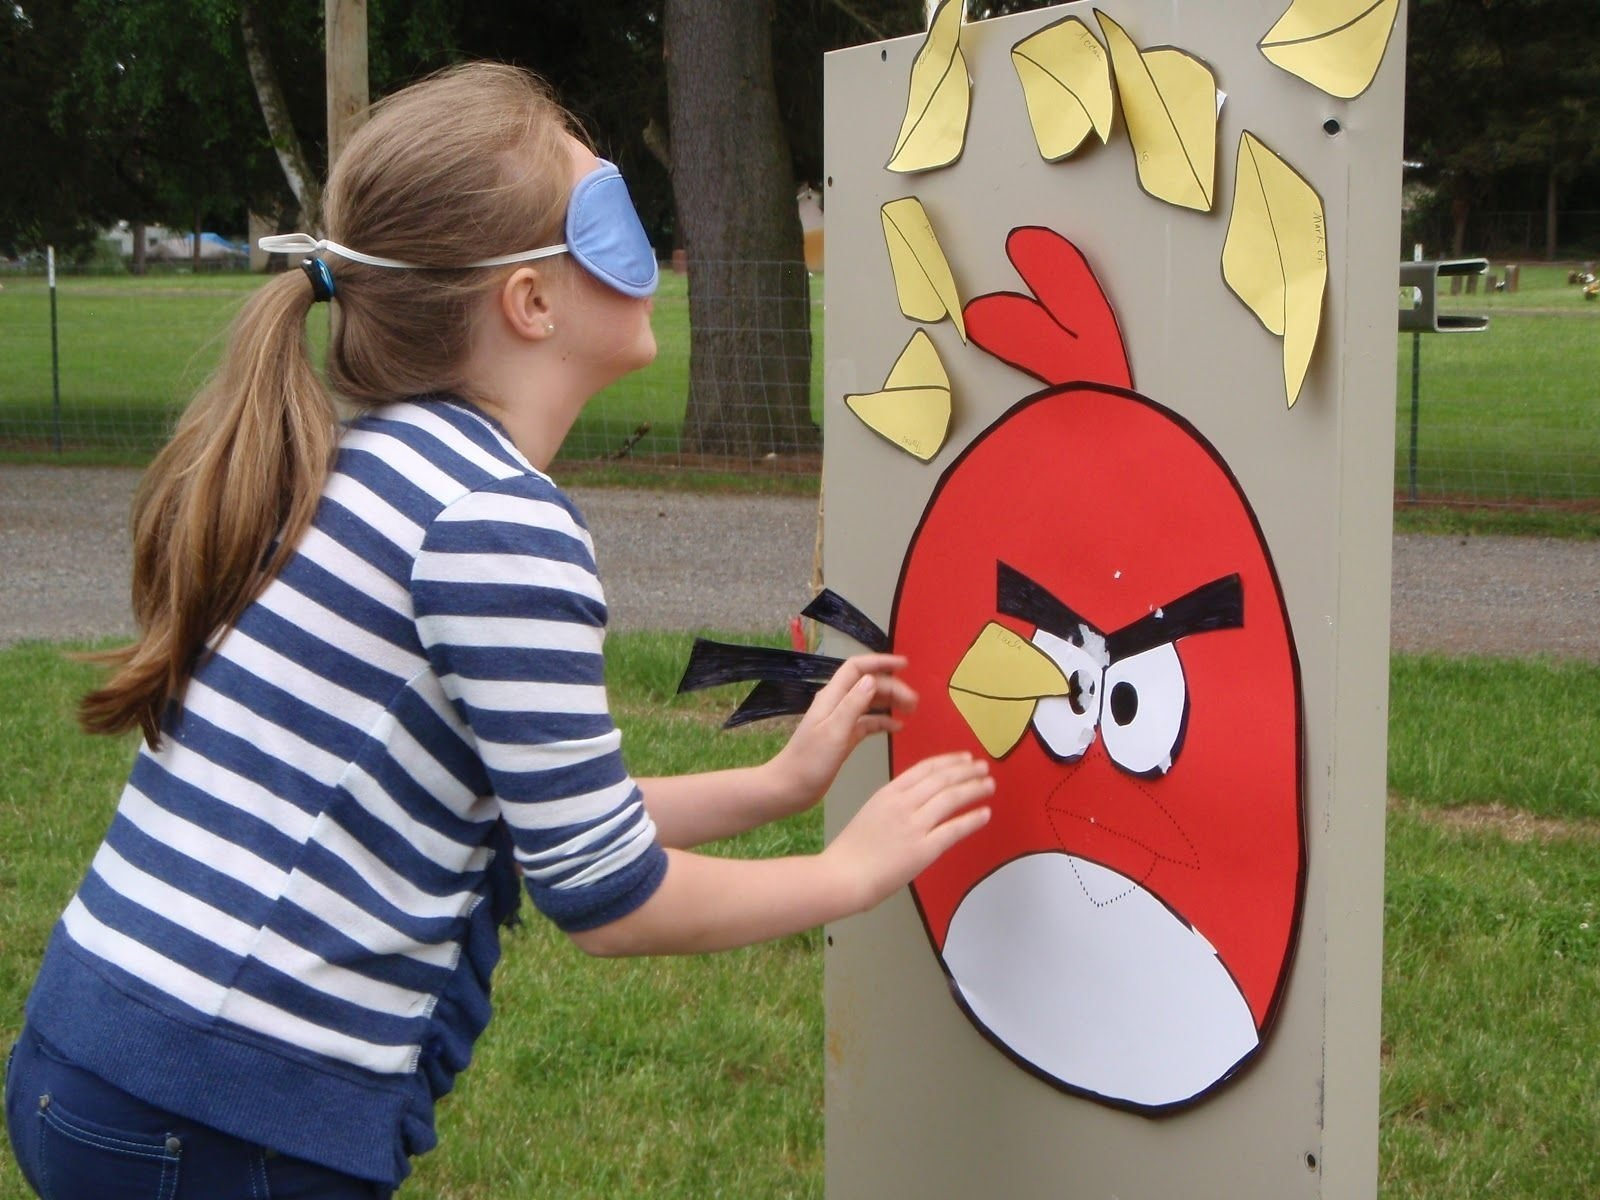 10 Fabulous Angry Birds Birthday Party Ideas angry birds party games builtwisdom angry birds birthday 2020